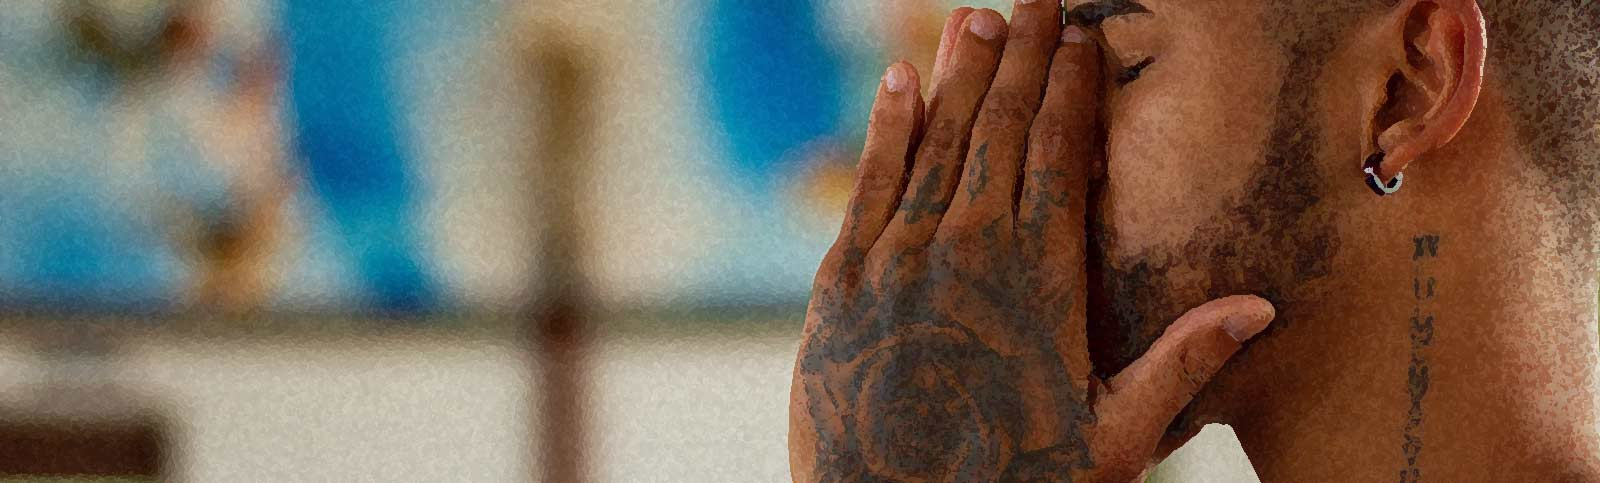 7 Questions You've Always Wanted to Ask About Tattoo Removals